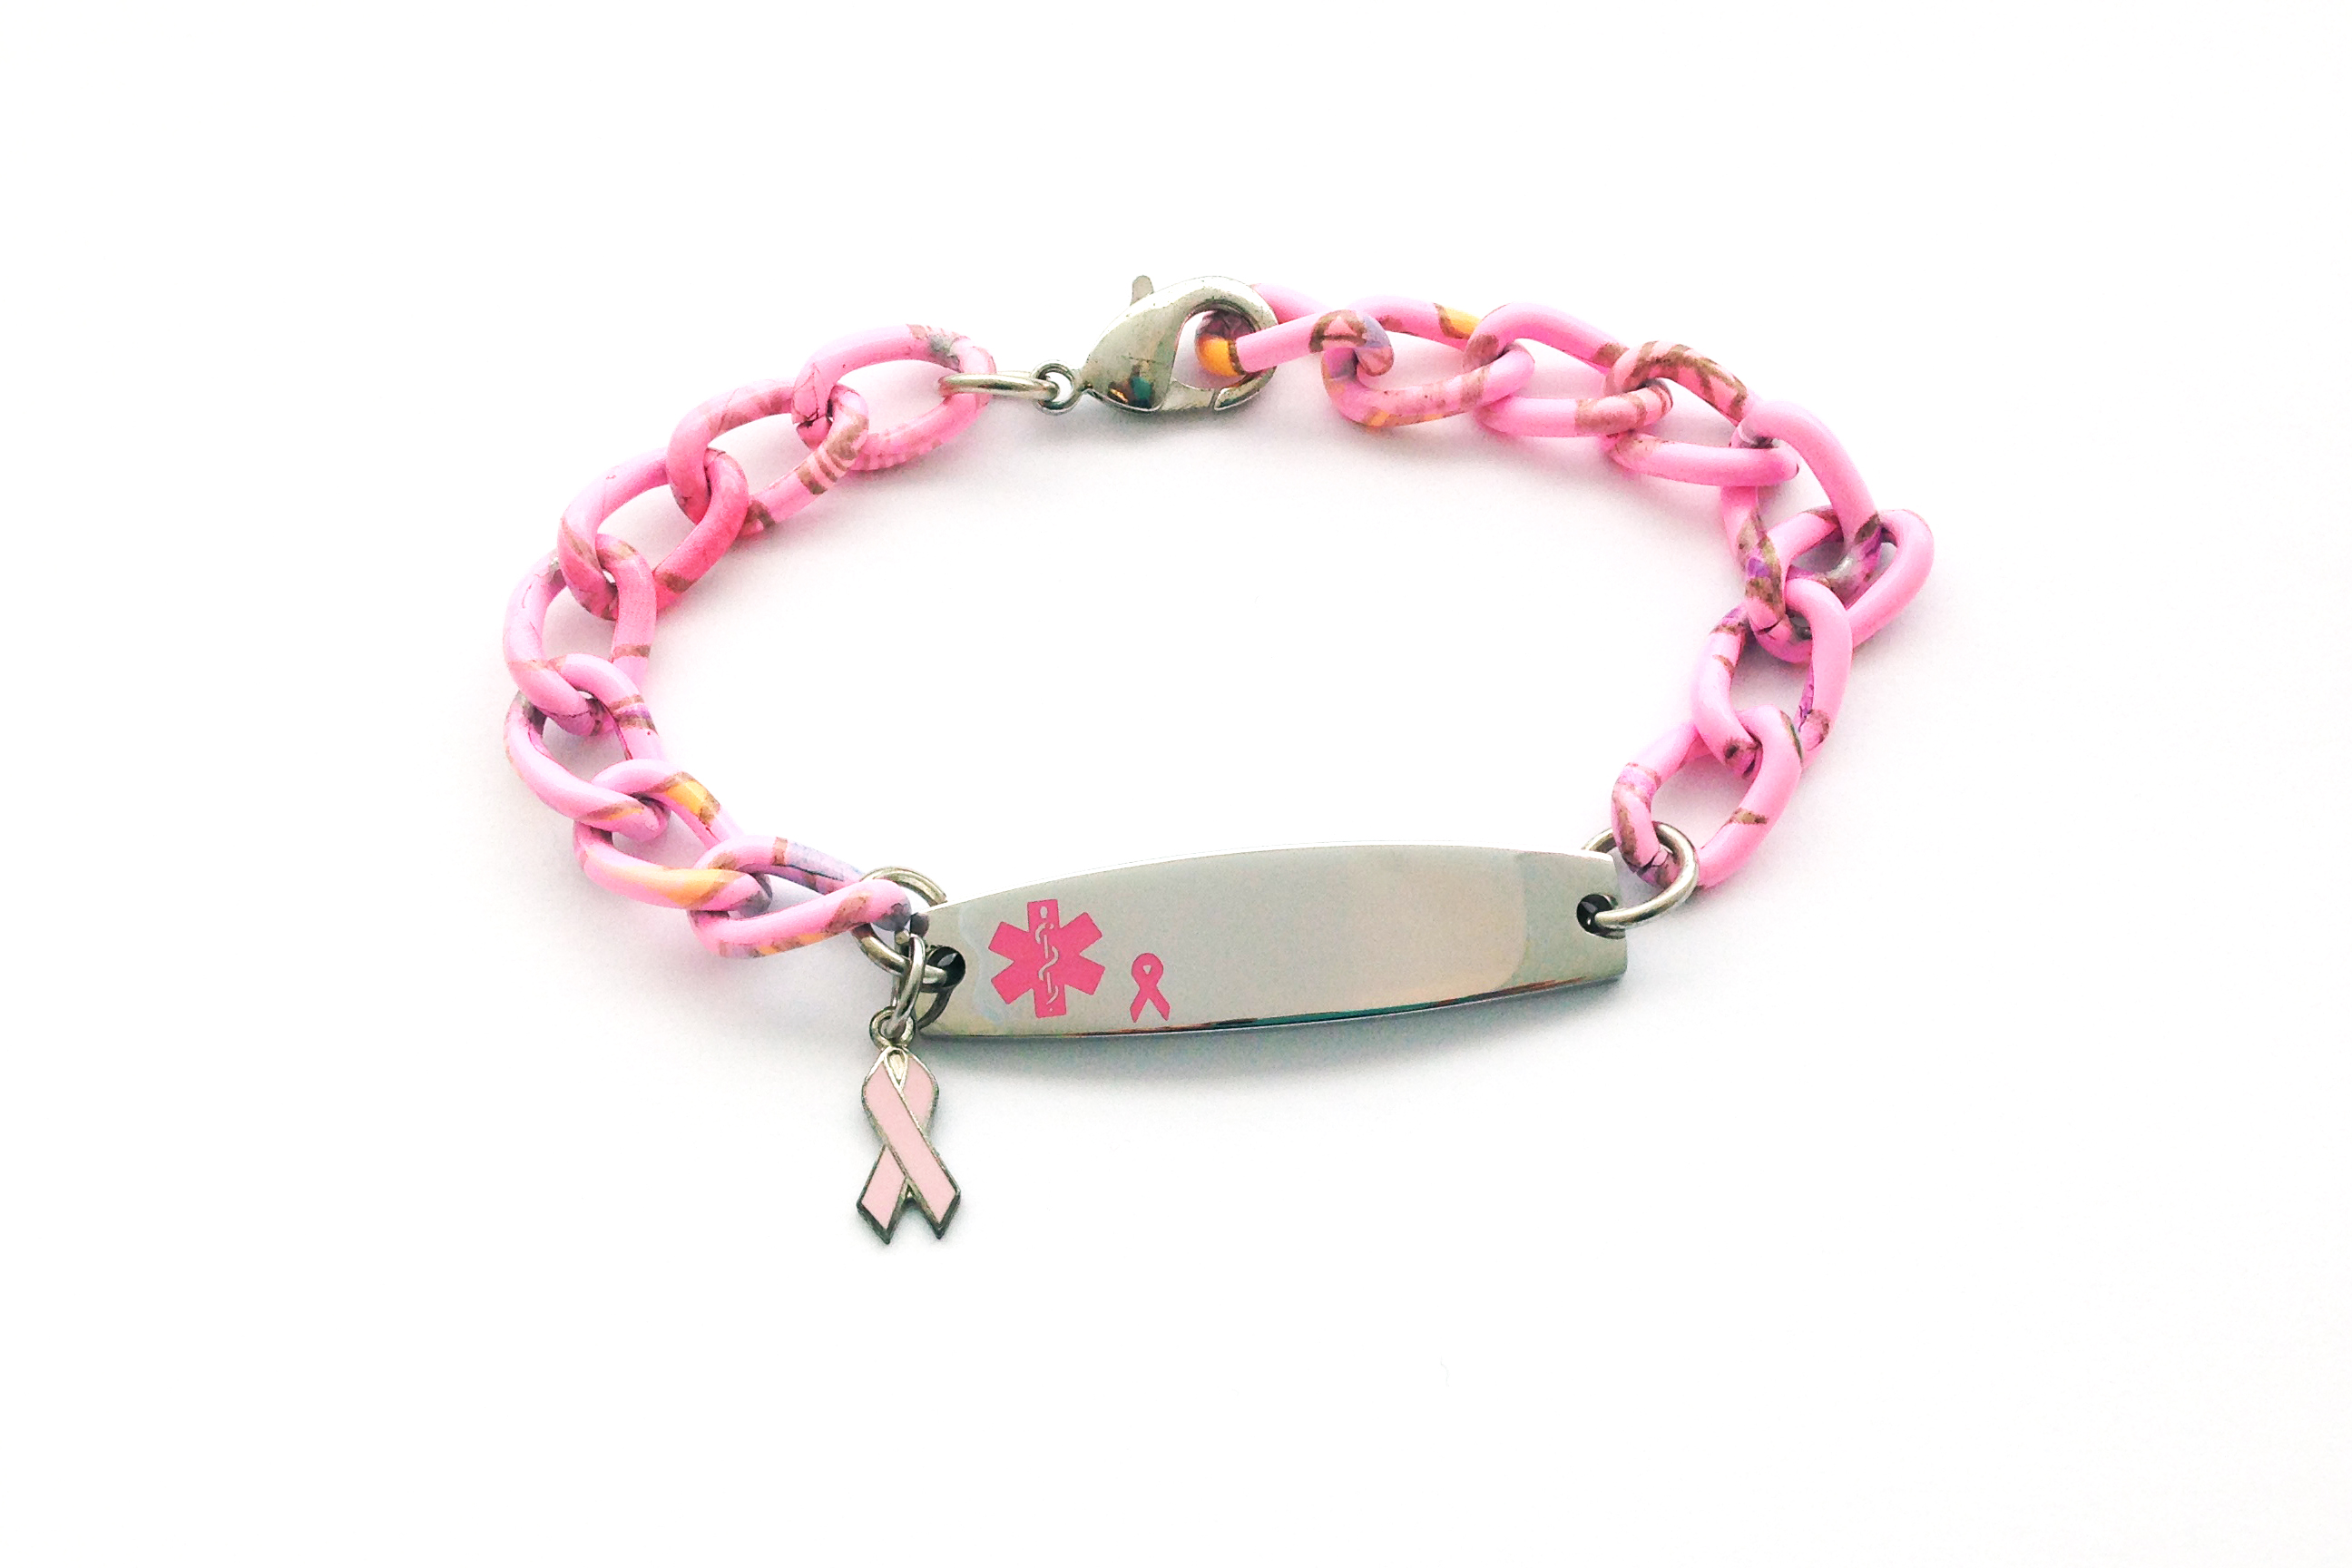 Pink Aluminum Medical ID with Breast Cancer Awareness Charm